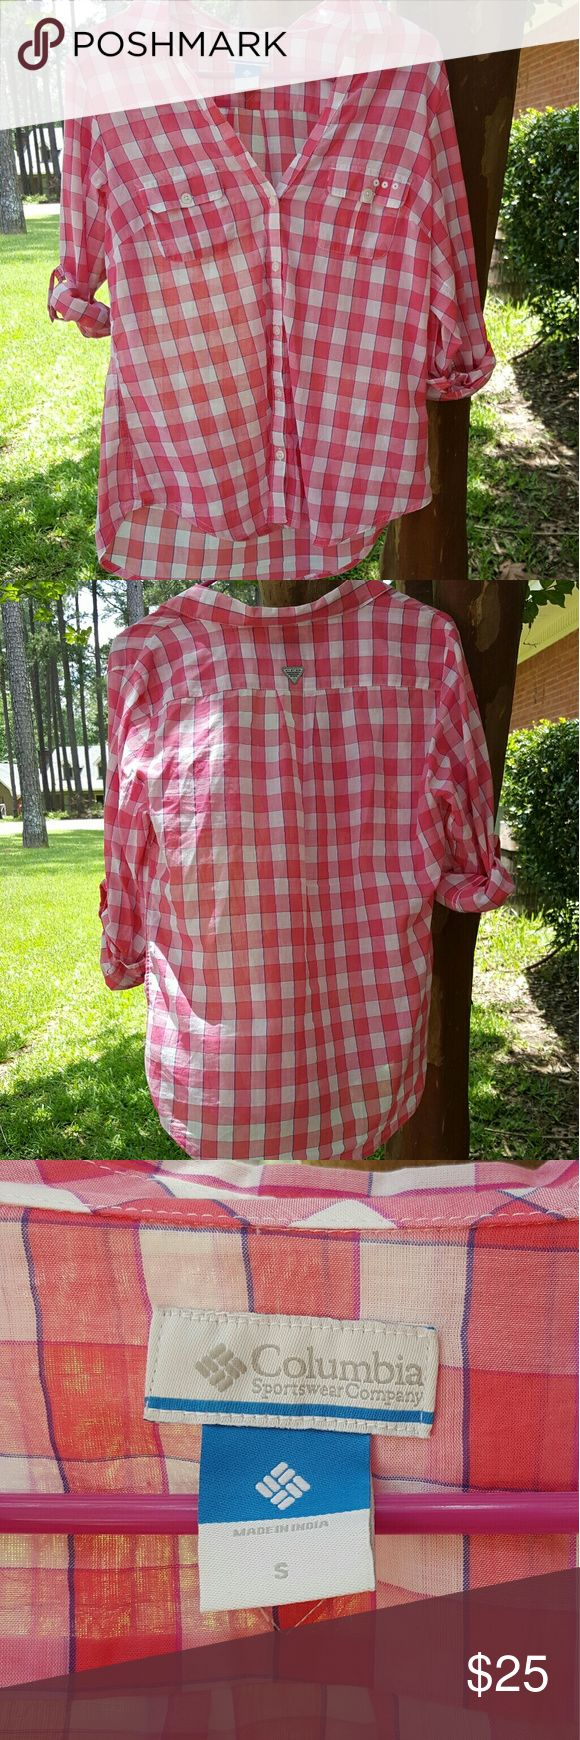 Columbia fishing shirt PFG Red and White Columbia fishing shirt, EUC, only worn once! Columbia Tops Button Down Shirts